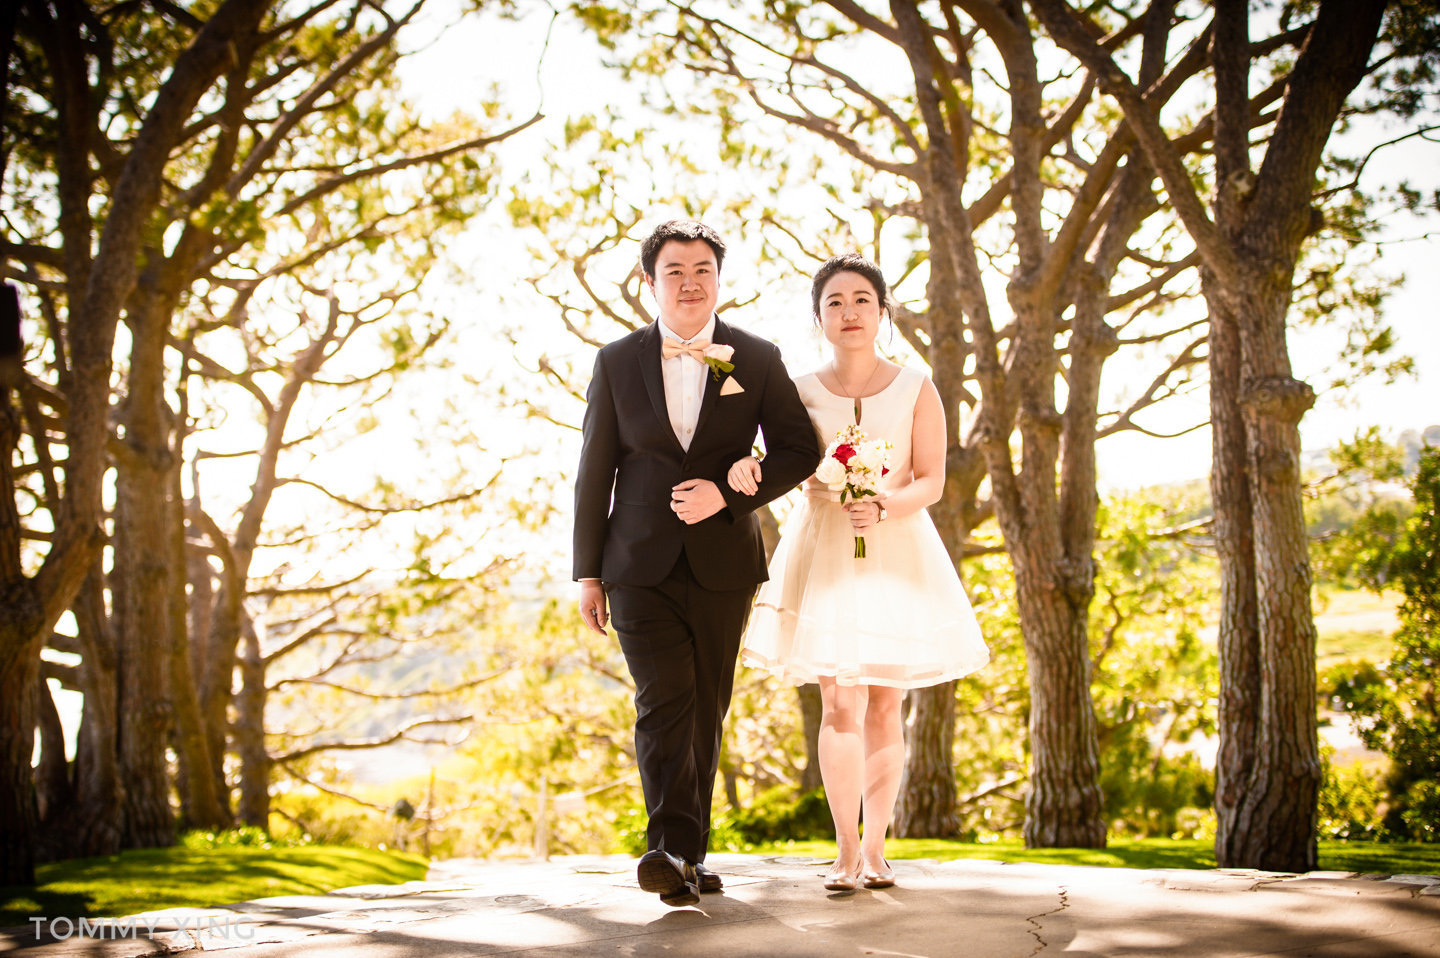 Los Angeles Wedding Photographer 洛杉矶婚礼婚纱摄影师 Tommy Xing-108.JPG